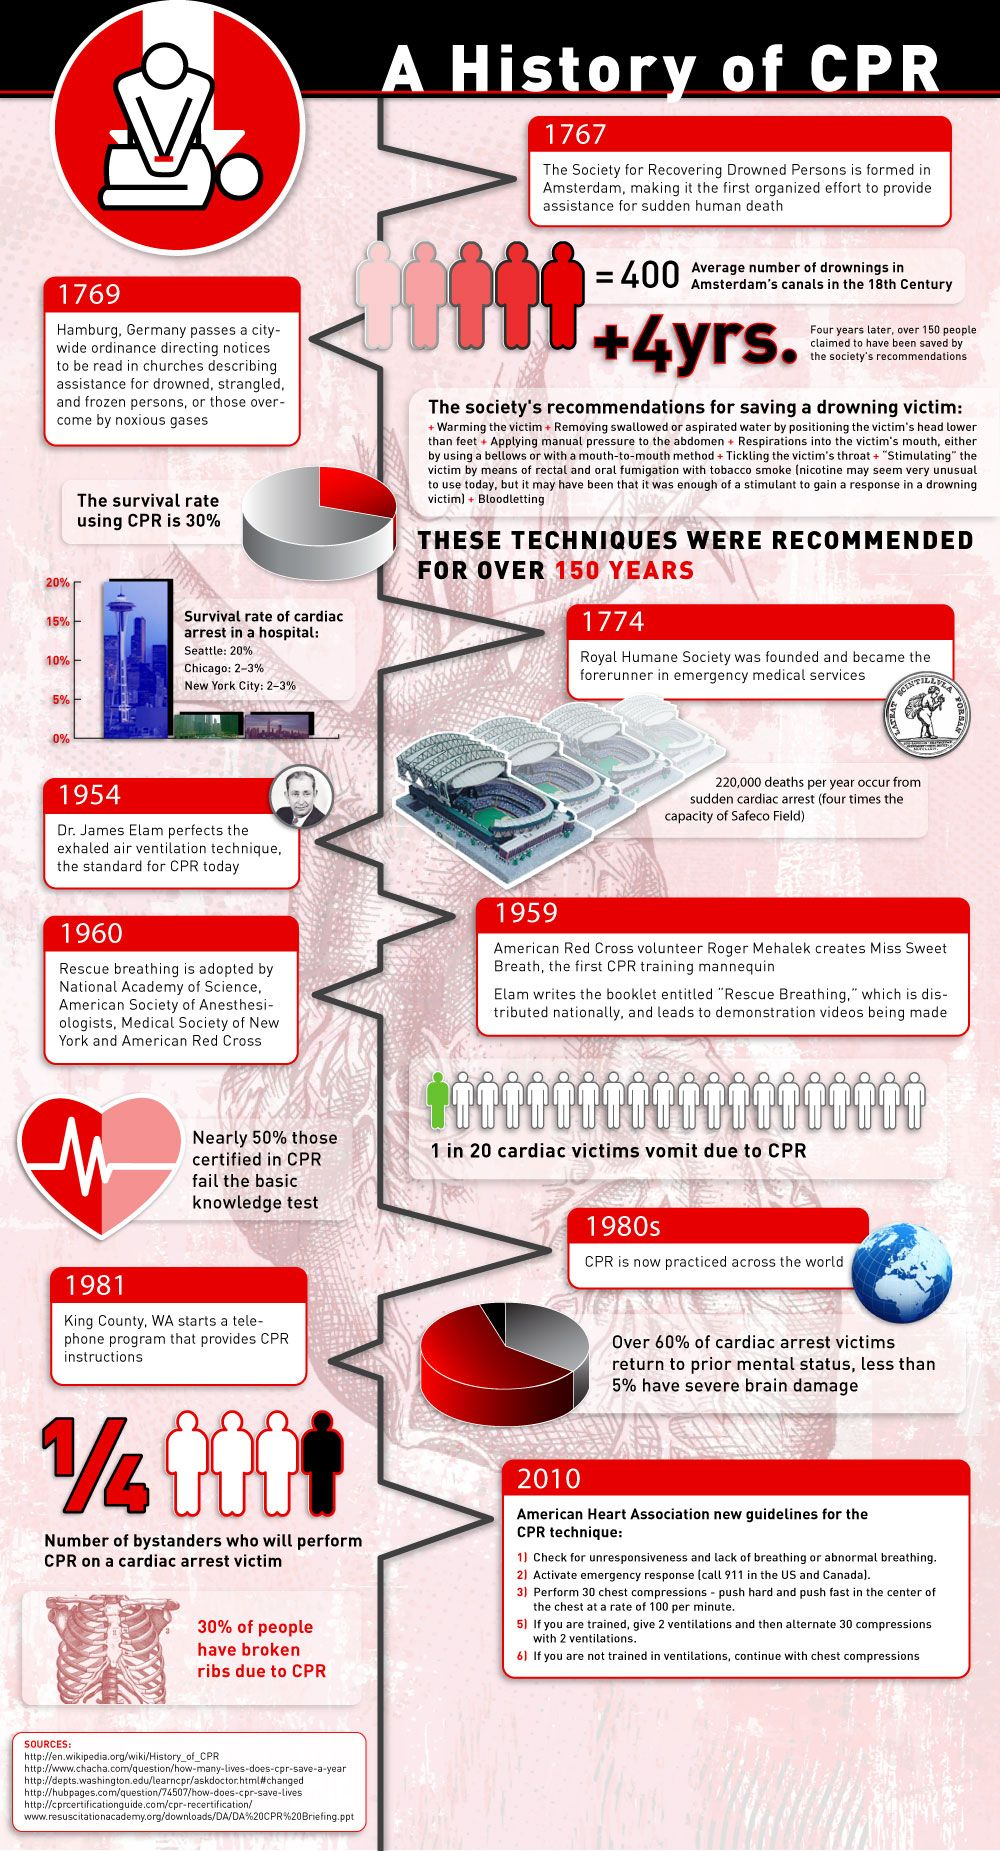 Pin By American Heart Association On Cpr First Aid Pinterest